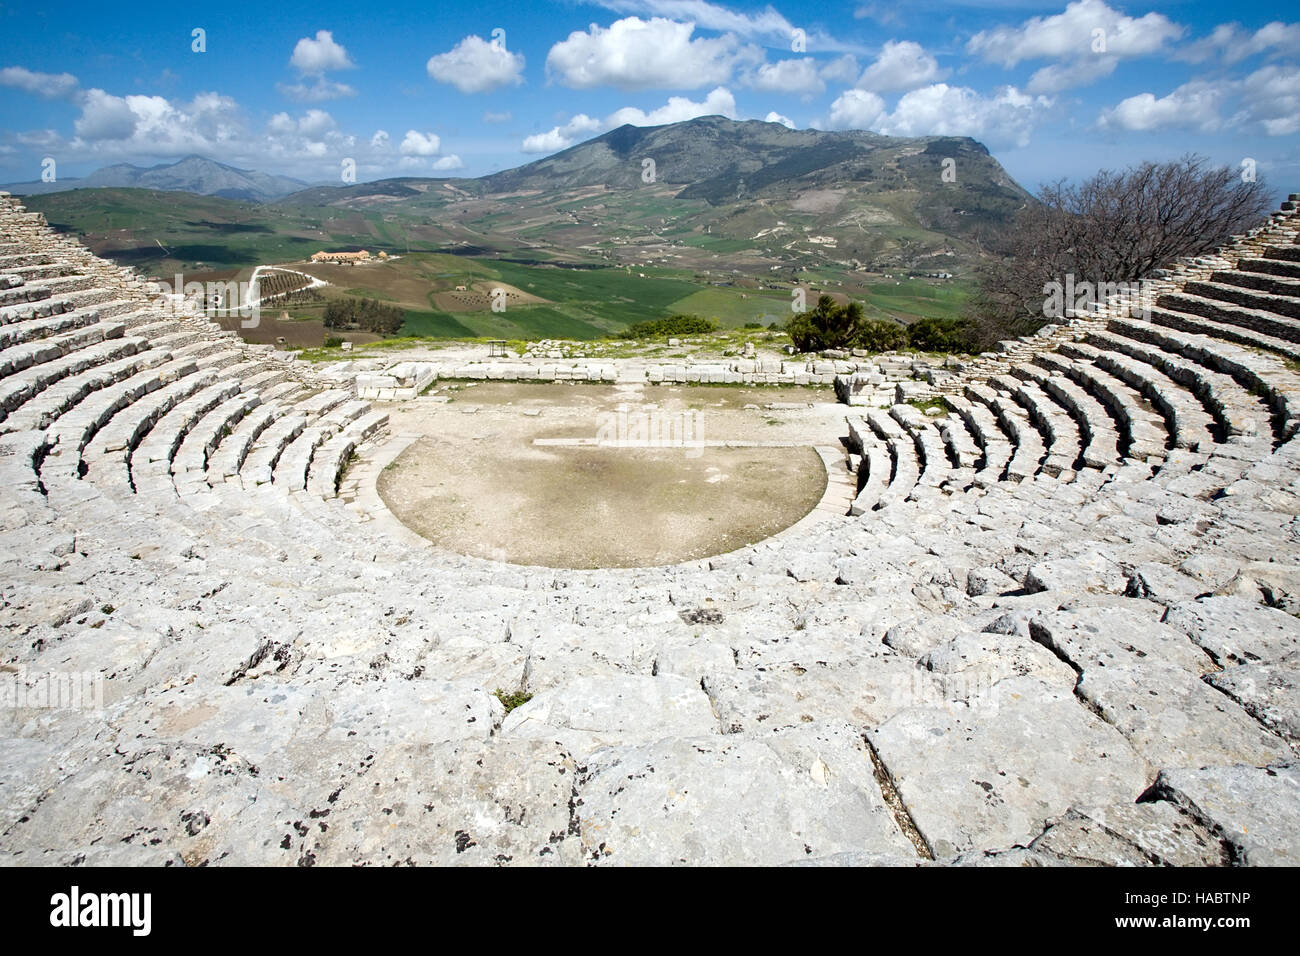 ancient Greek stone theatre ruins view on scenic panorama background, Segesta, Sicily, Italy Stock Photo